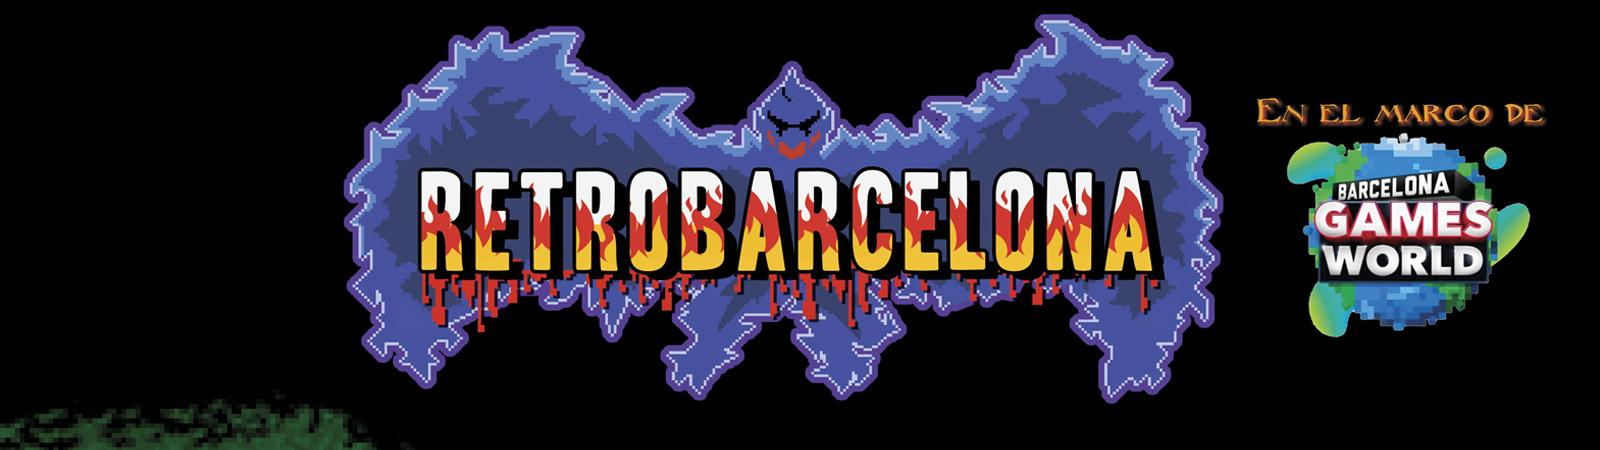 RetroBarcelona Barcelona Games World